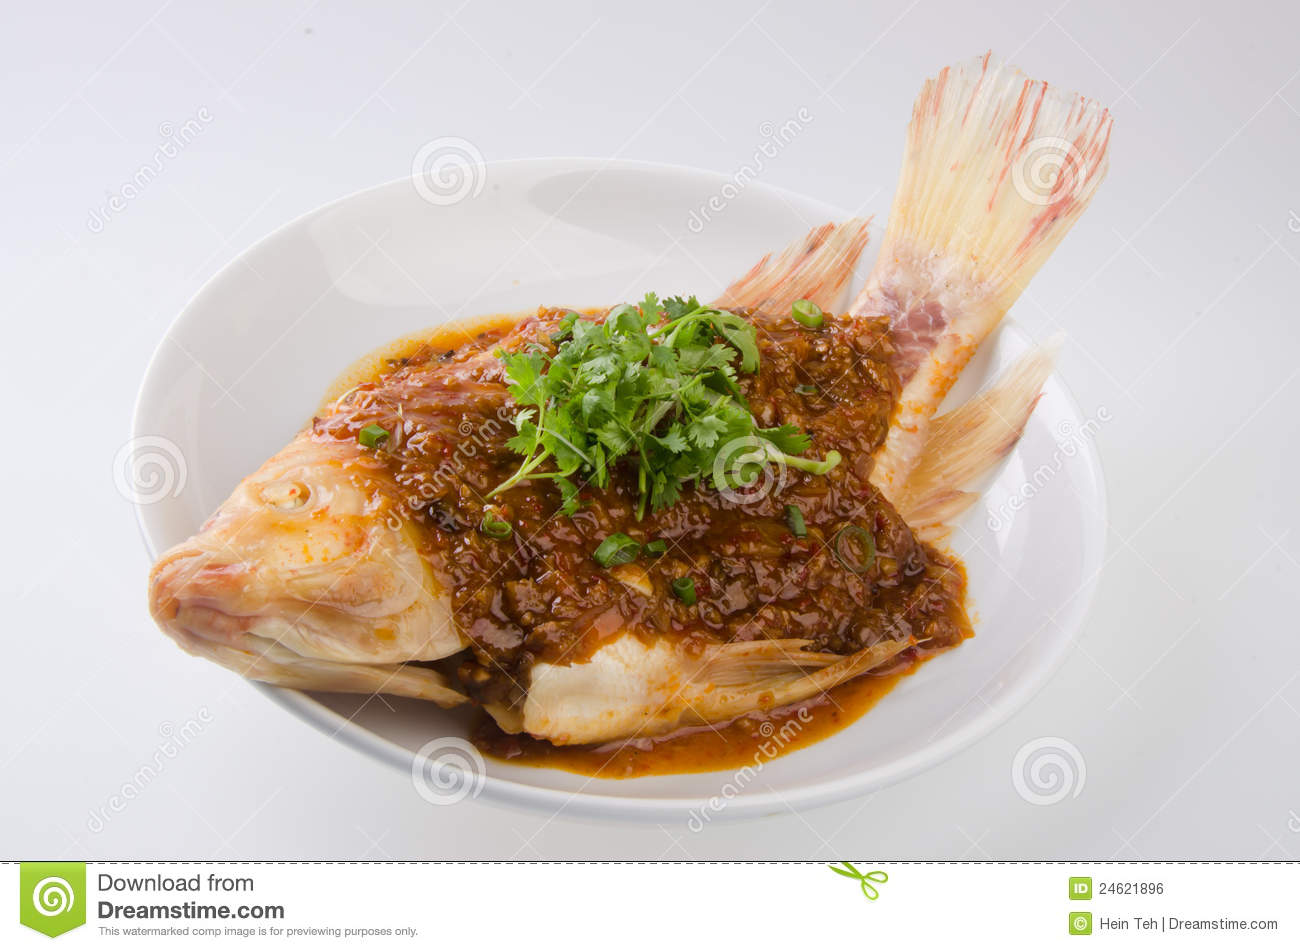 Steamed fish with chili soy sauce royalty free stock image for Soy sauce fish